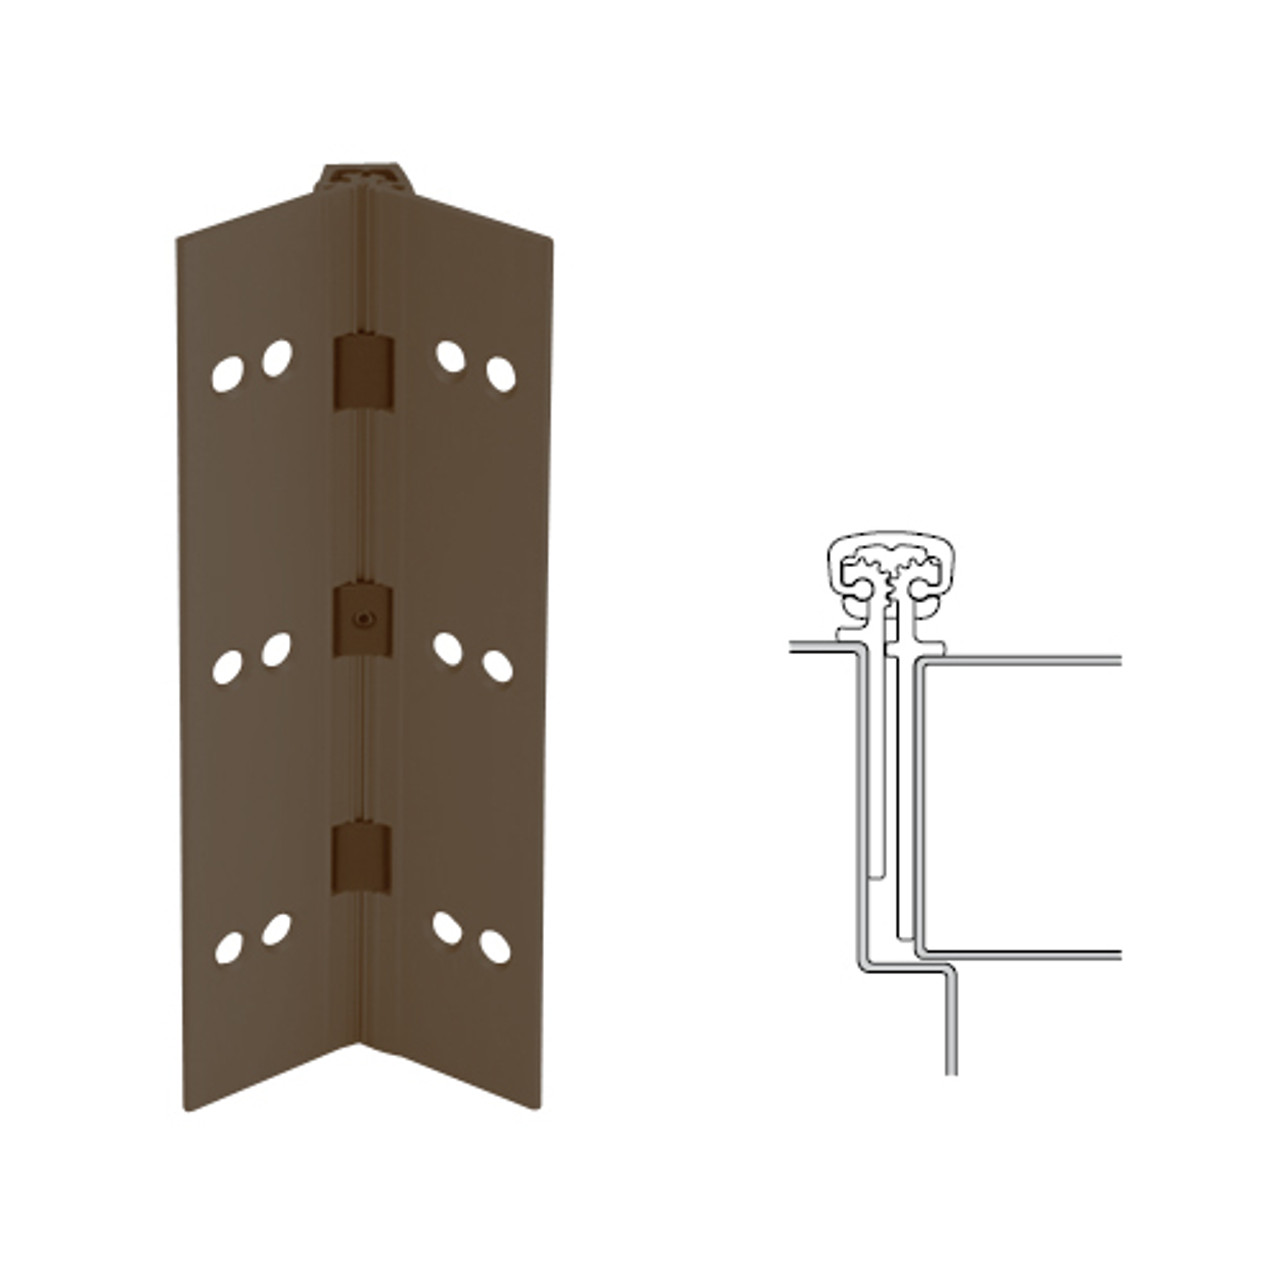 026XY-313AN-95-TF IVES Full Mortise Continuous Geared Hinges with Thread Forming Screws in Dark Bronze Anodized